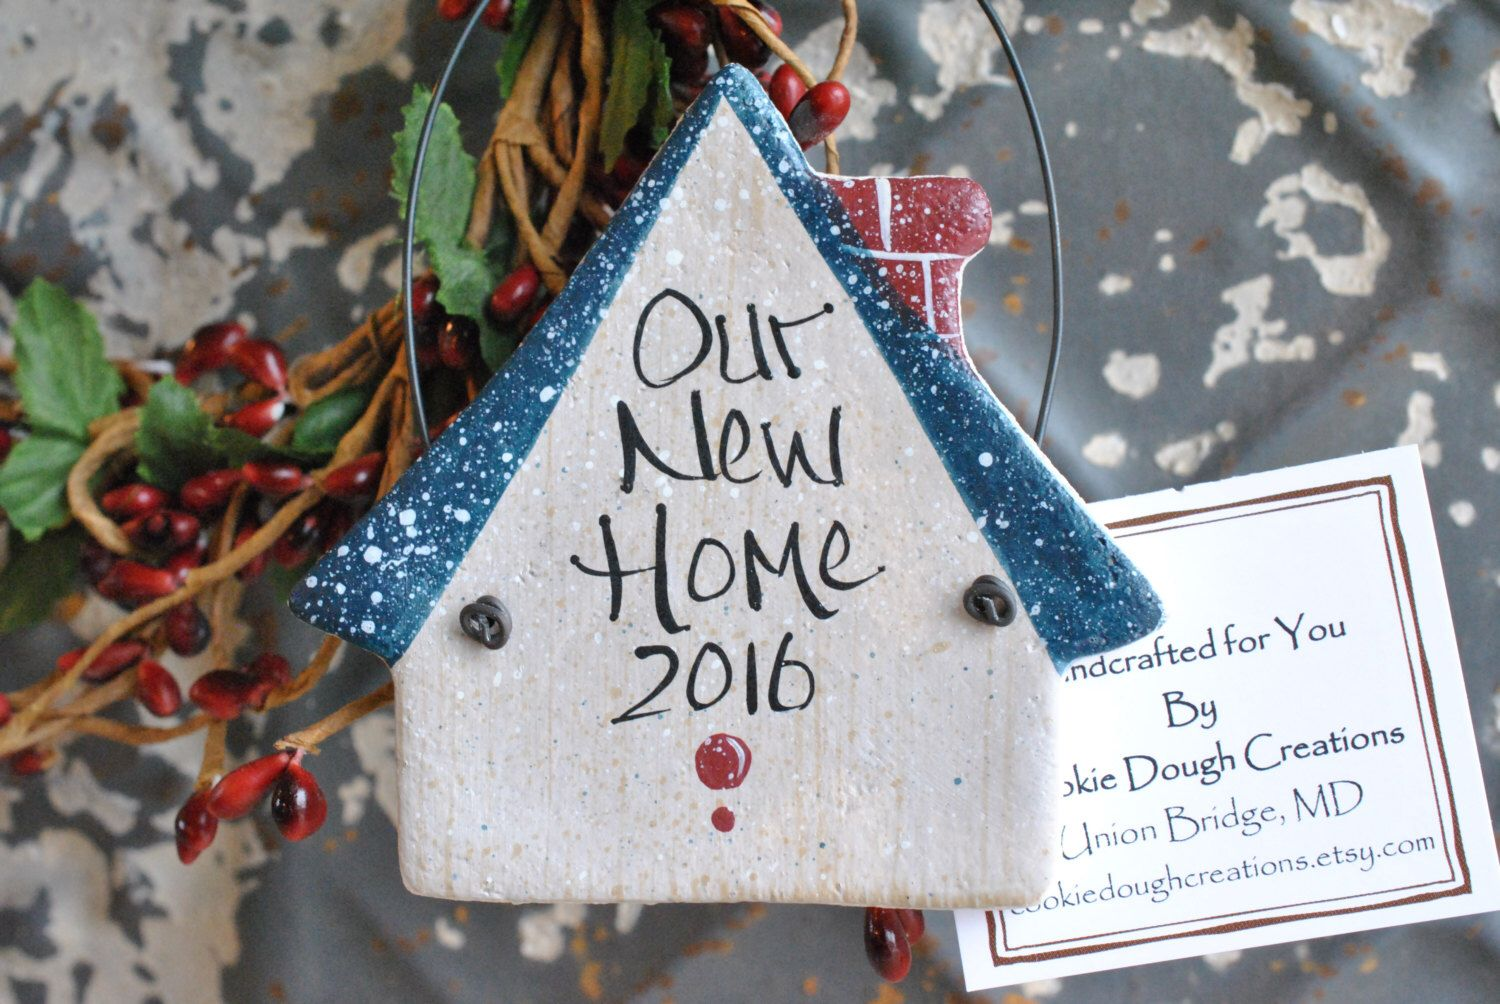 First Christmas New Home Salt Dough Ornament Housewarming Gift by cookiedoughcreations on Etsy https://www.etsy.com/listing/269522660/first-christmas-new-home-salt-dough